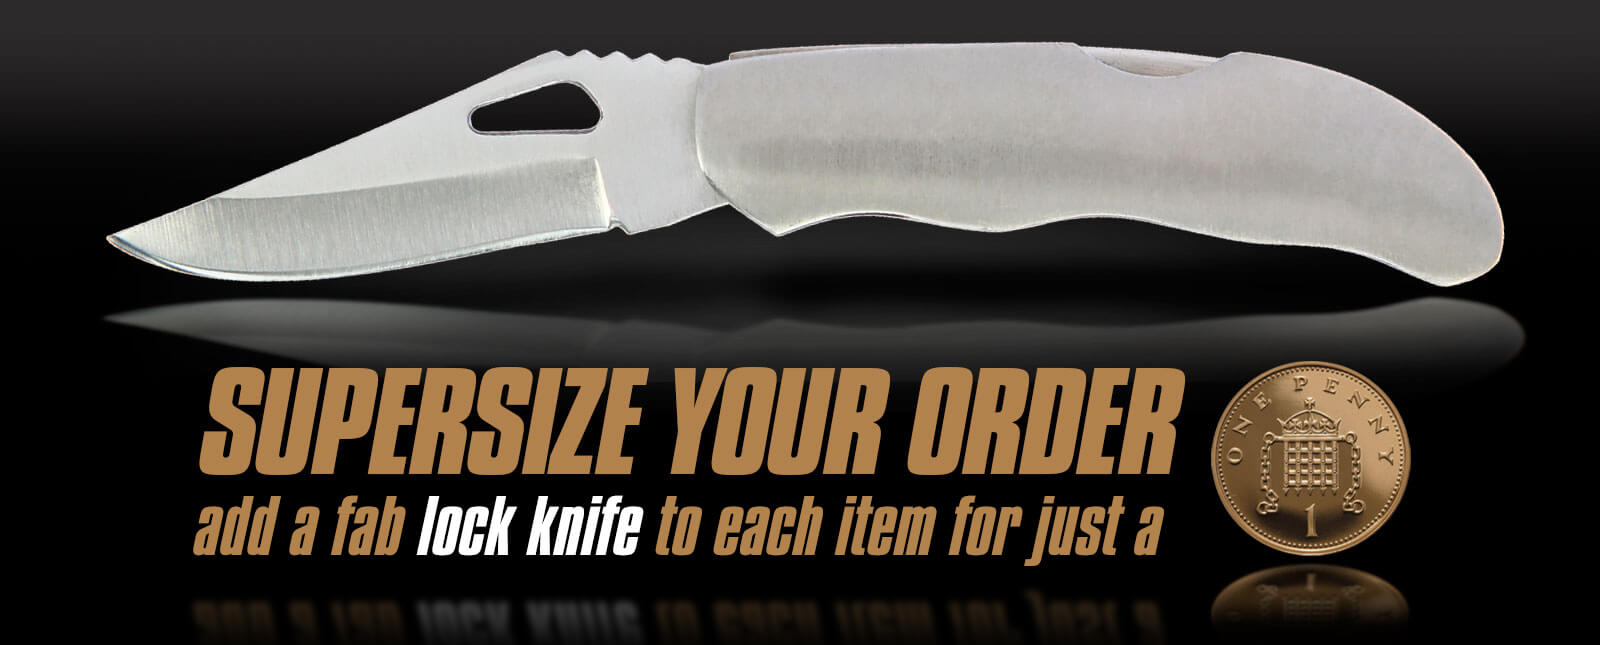 Supersize your order - 1p Add-on